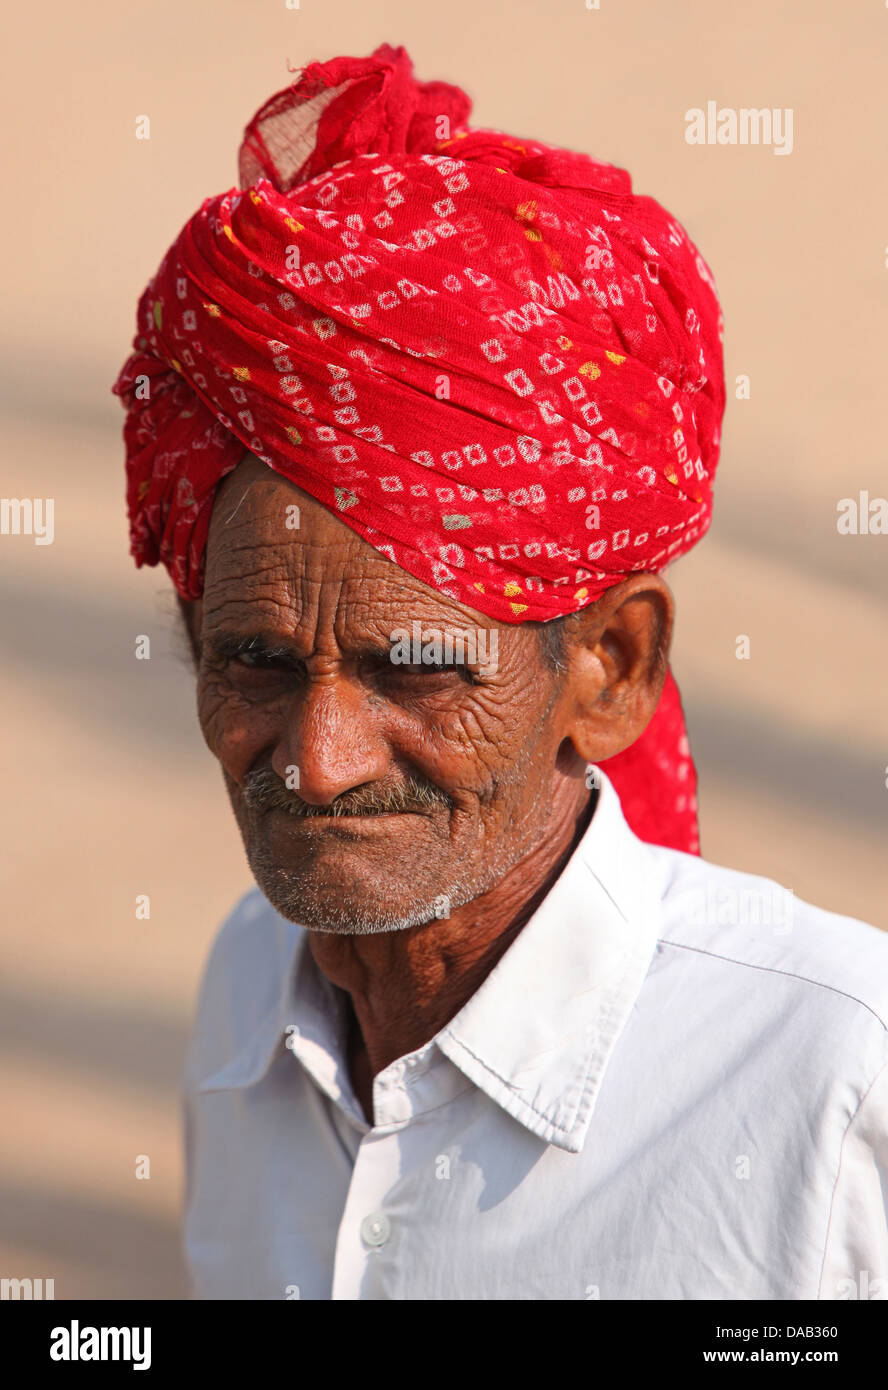 Man, old, folds, wrinkles, turban, look, glance, portrait, Bundi, India, Asia, Rajasthan, - Stock Image